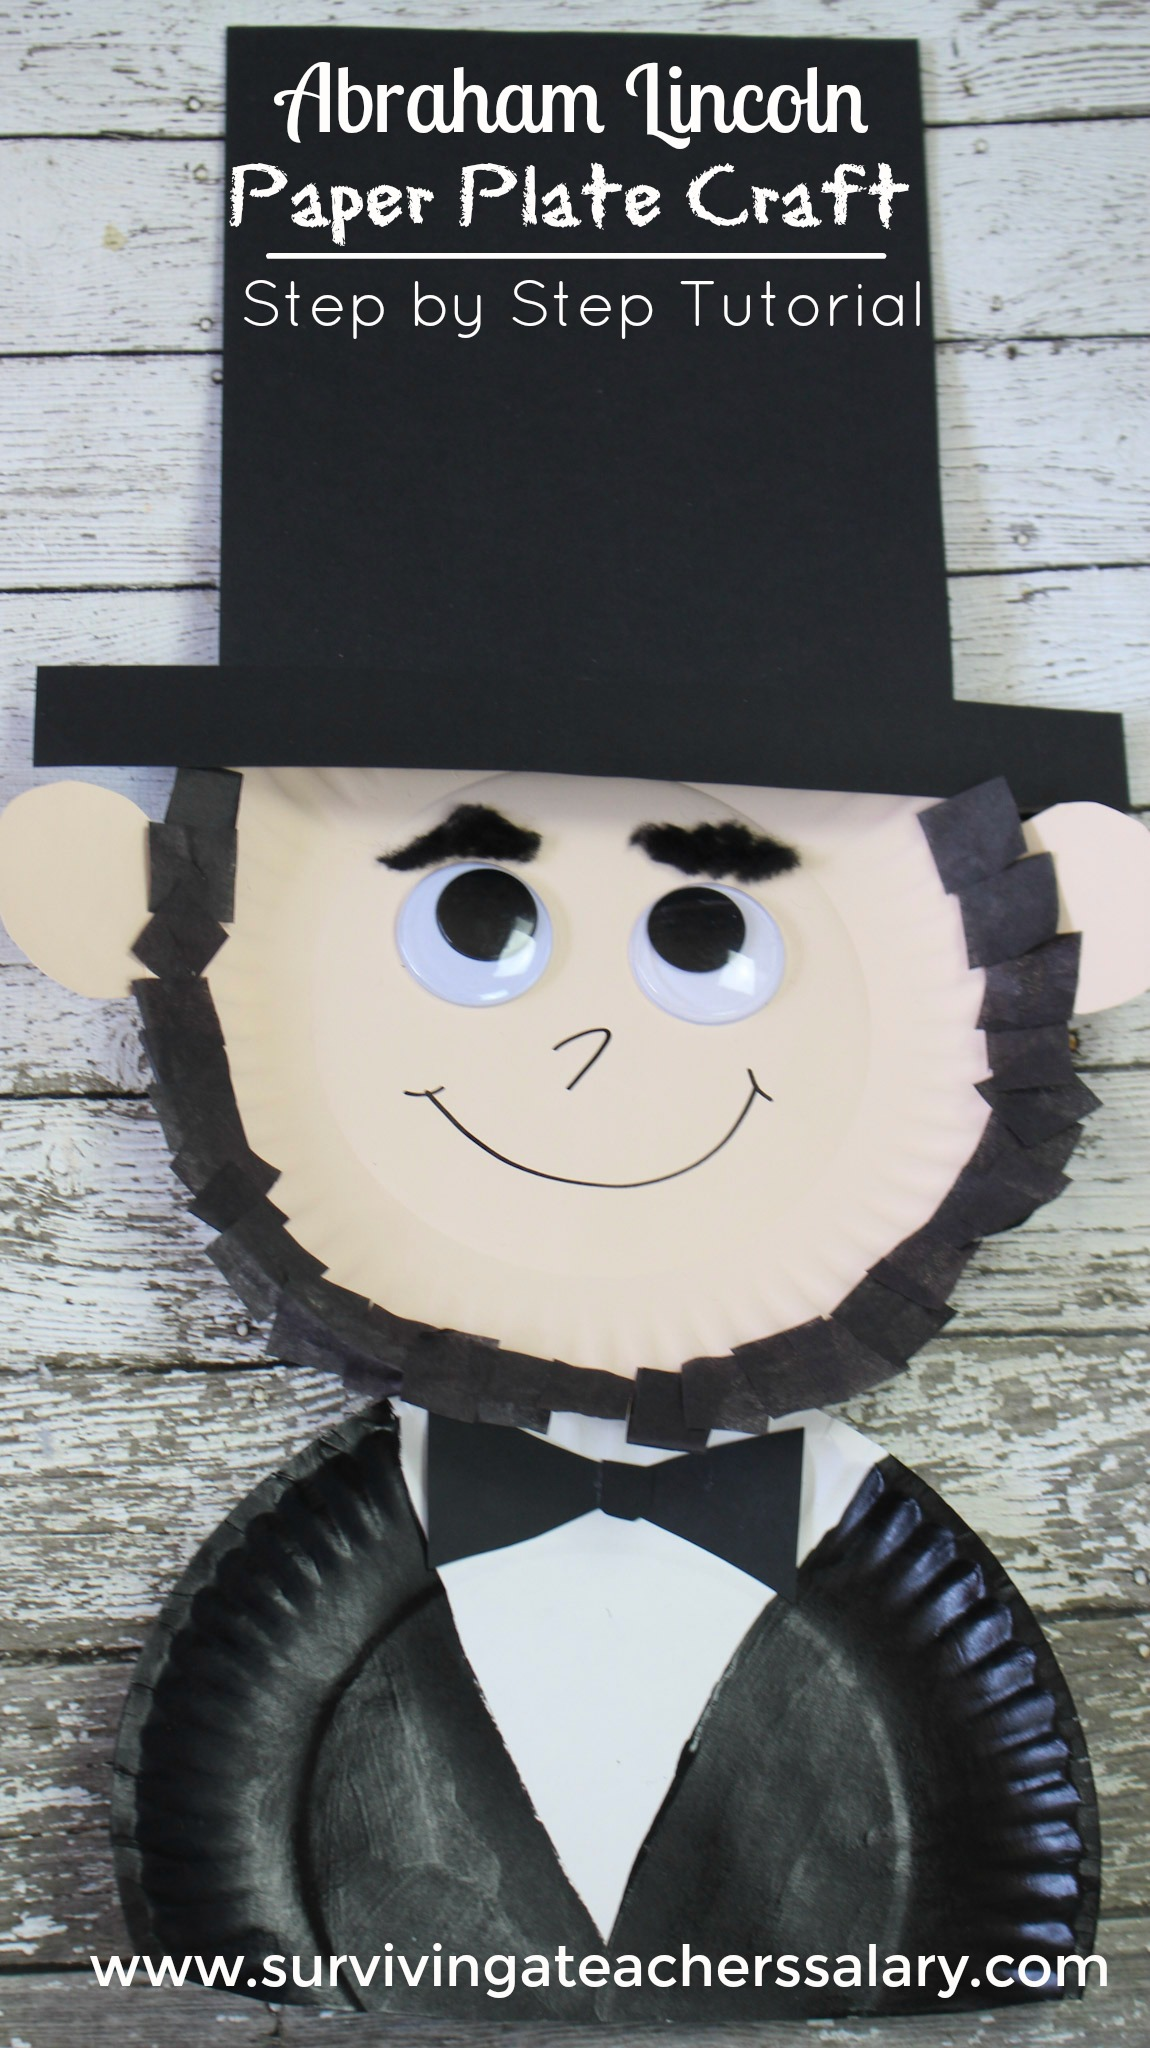 President's Day Abraham Lincoln Paper Plate Kid's Craft